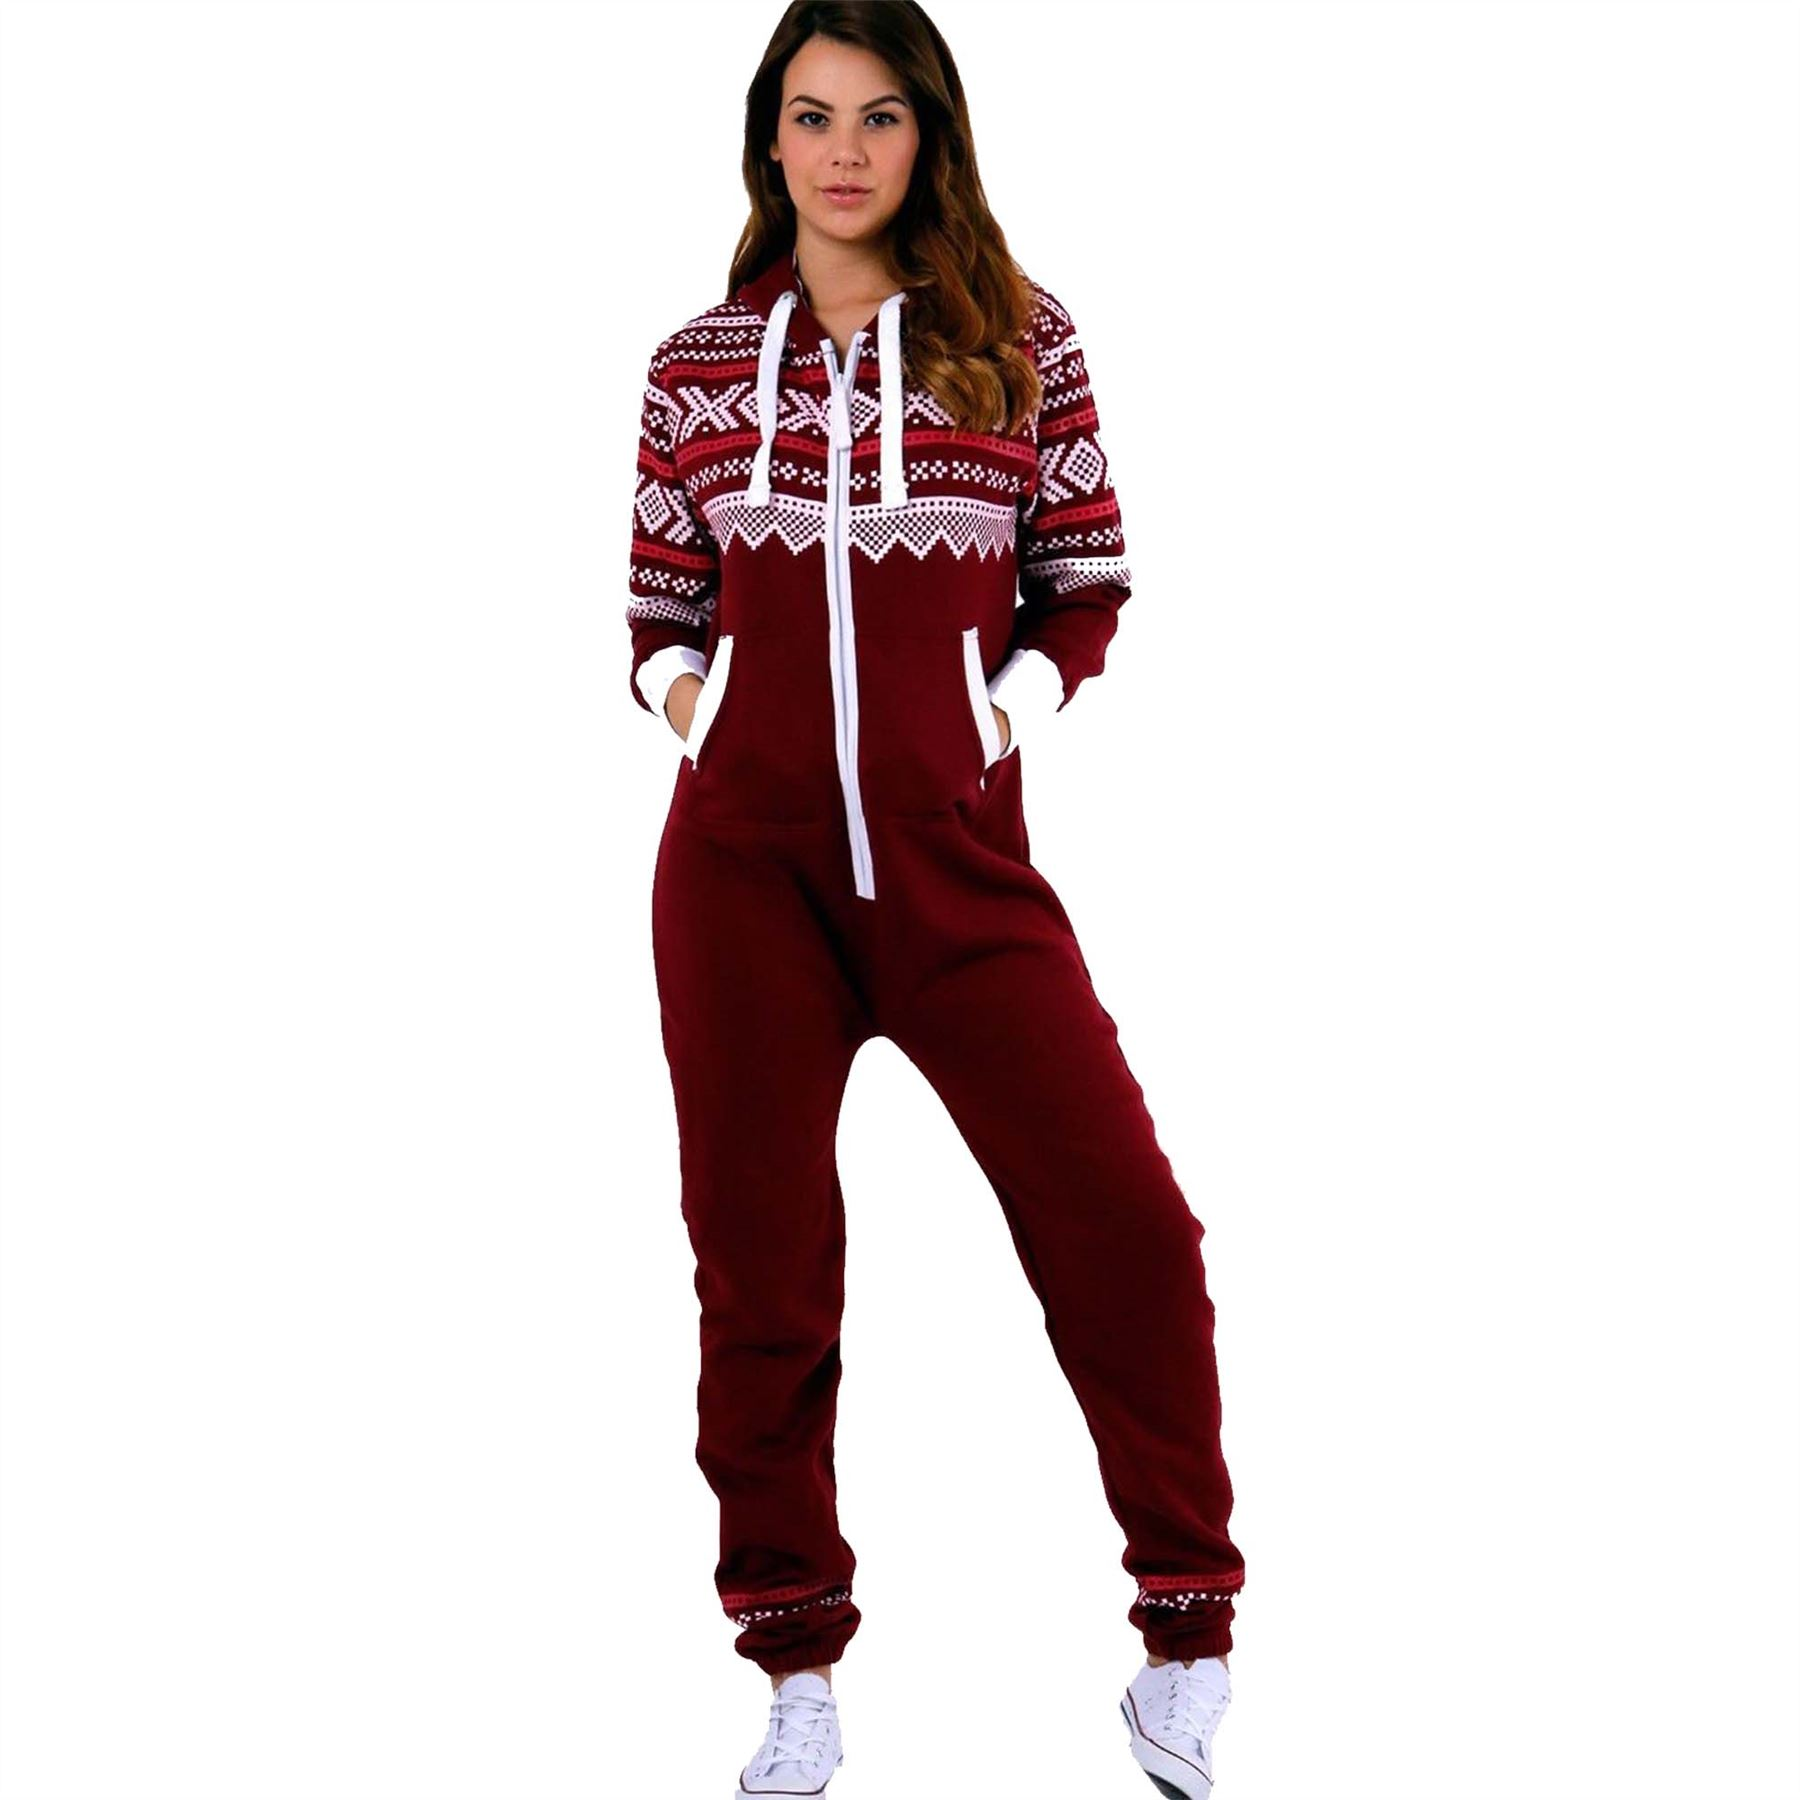 34d25eb4fefd Details about Ladies Aztec Hooded Onesie All In One Playsuit Womens Adult  Jumpsuit Not Gerber